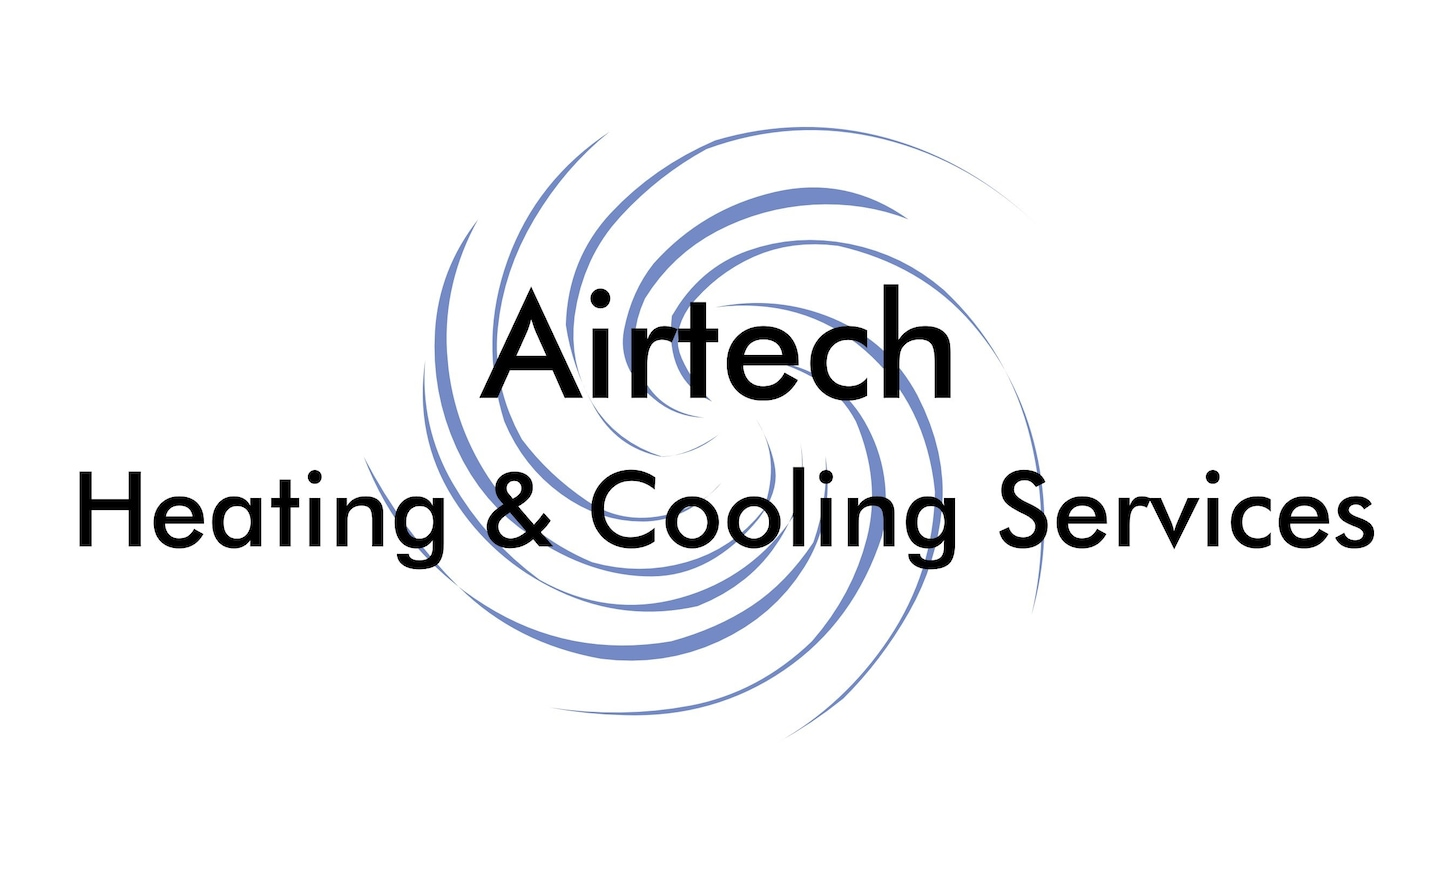 Airtech Heating & Cooling Services